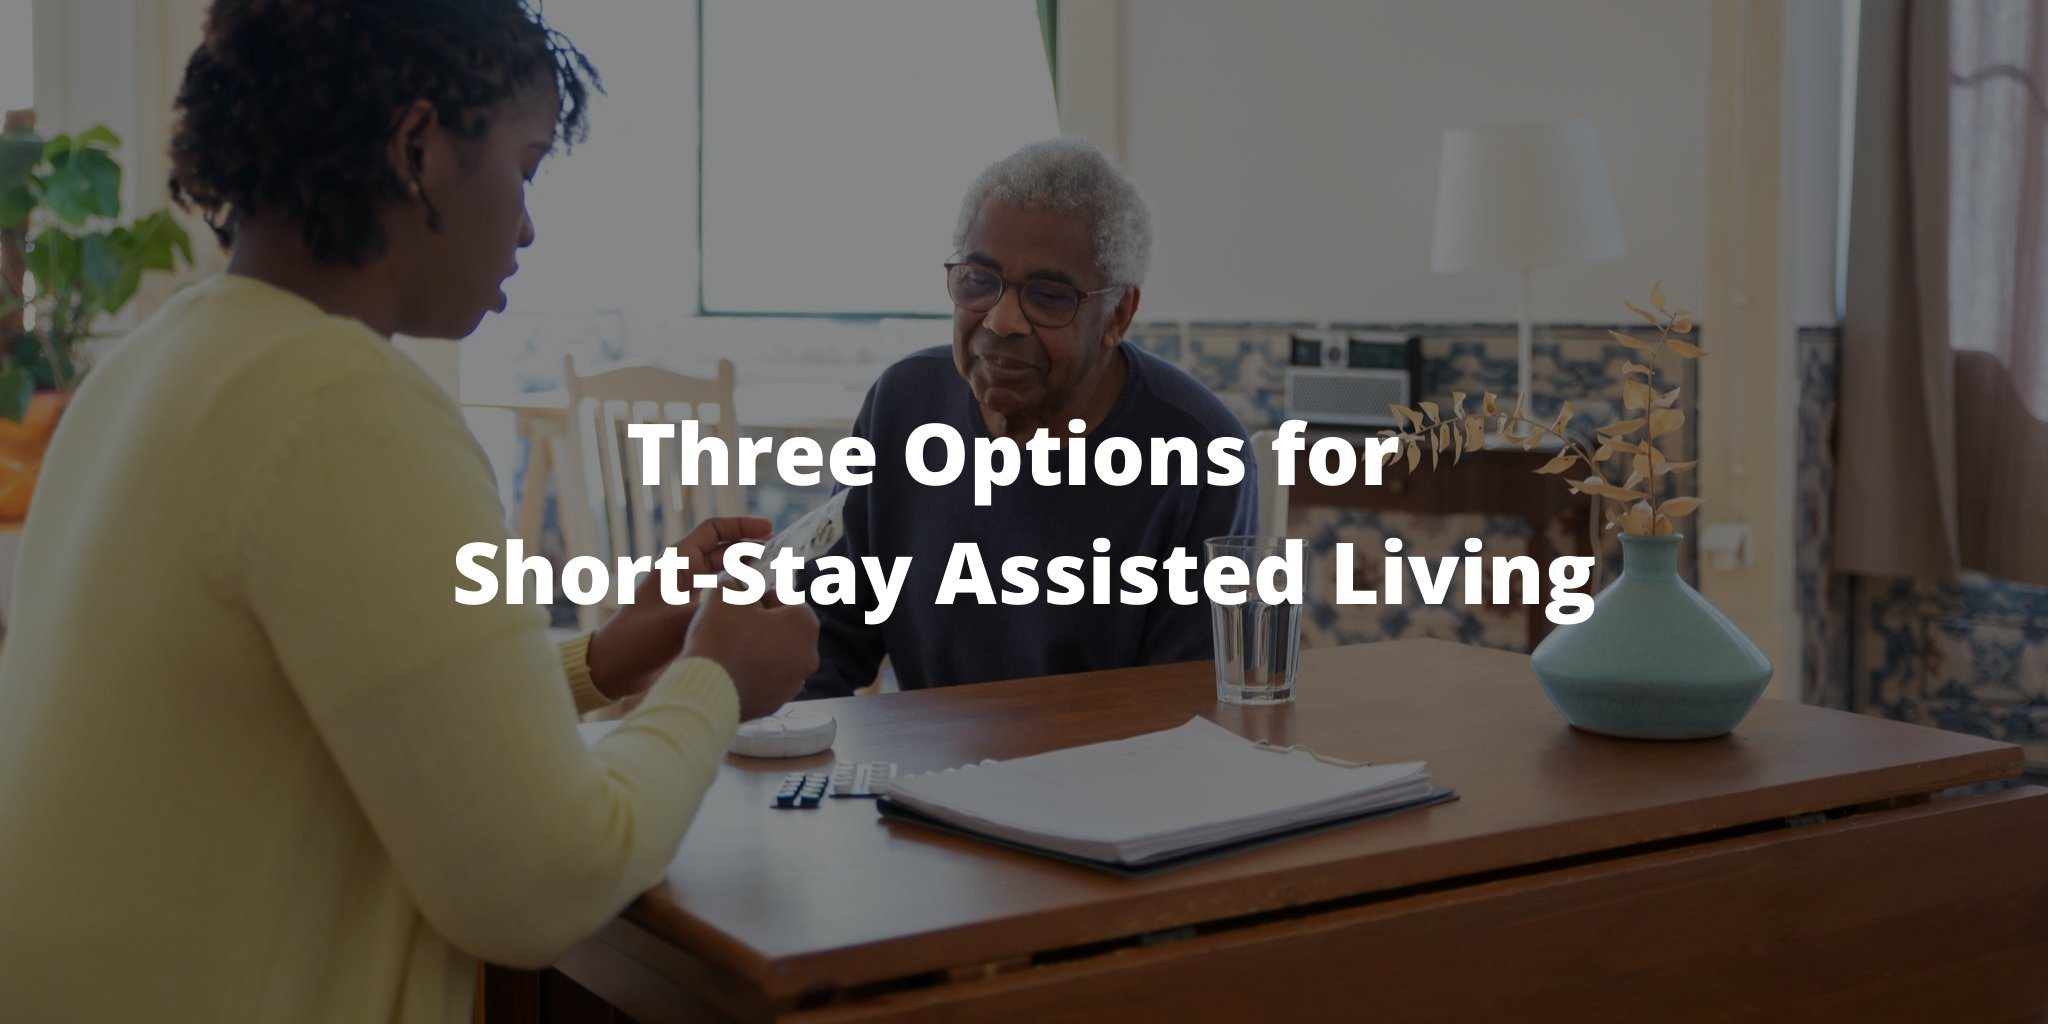 Three Options for Short-Stay Assisted Living